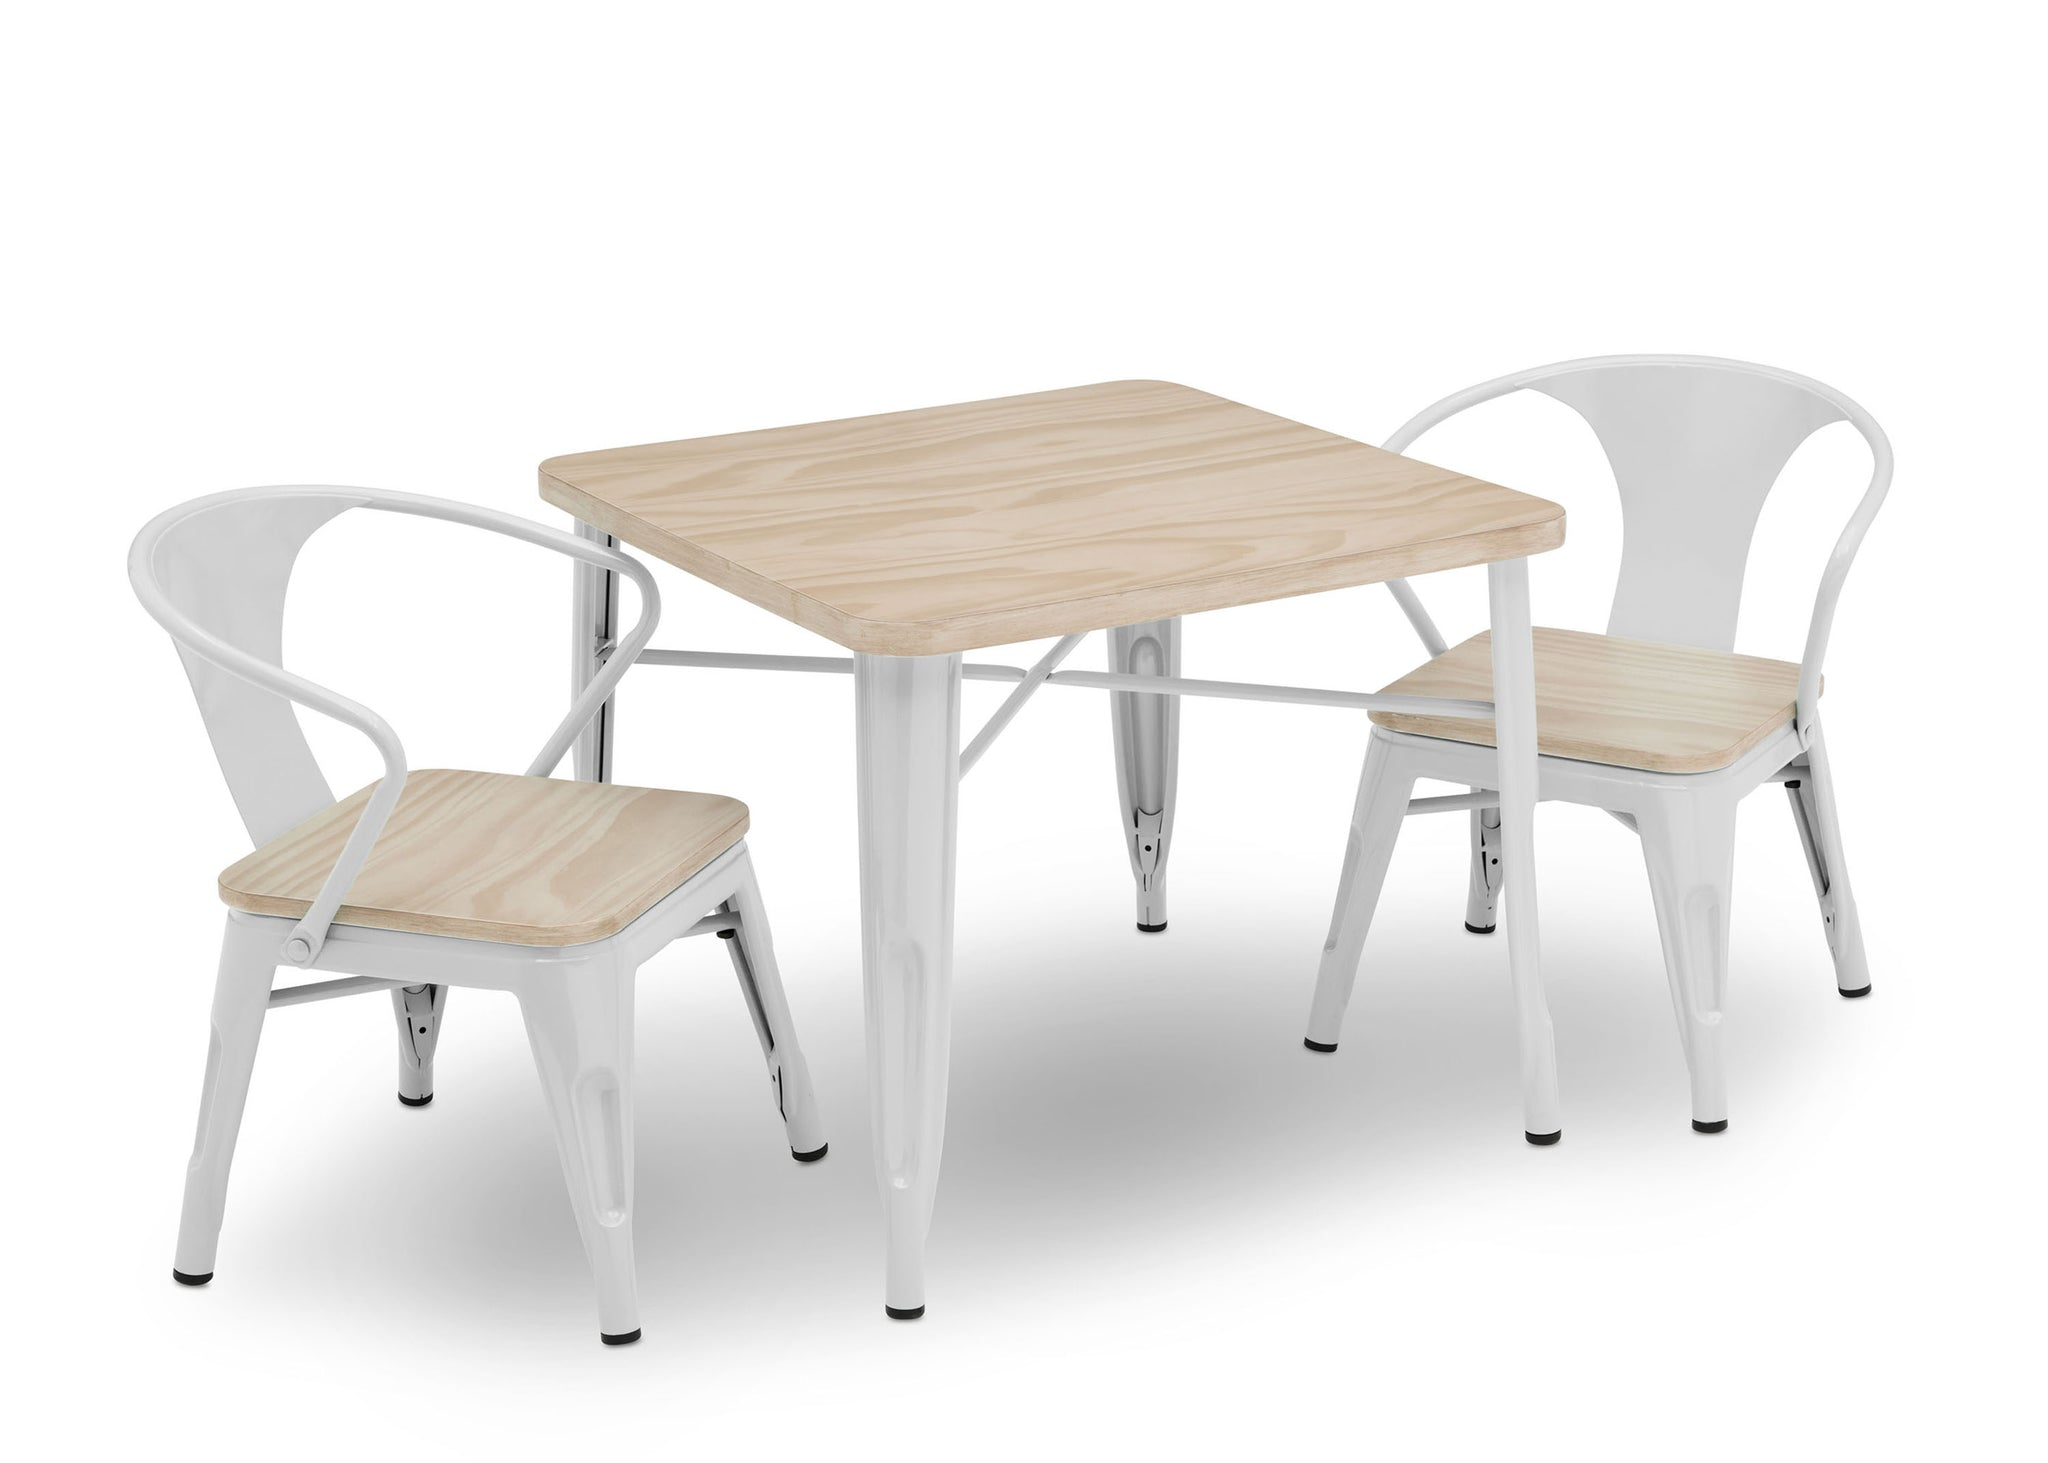 Delta Children White with Driftwood (1313) Bistro 2-Piece Chair Set (560301), Table and Chair View b7b